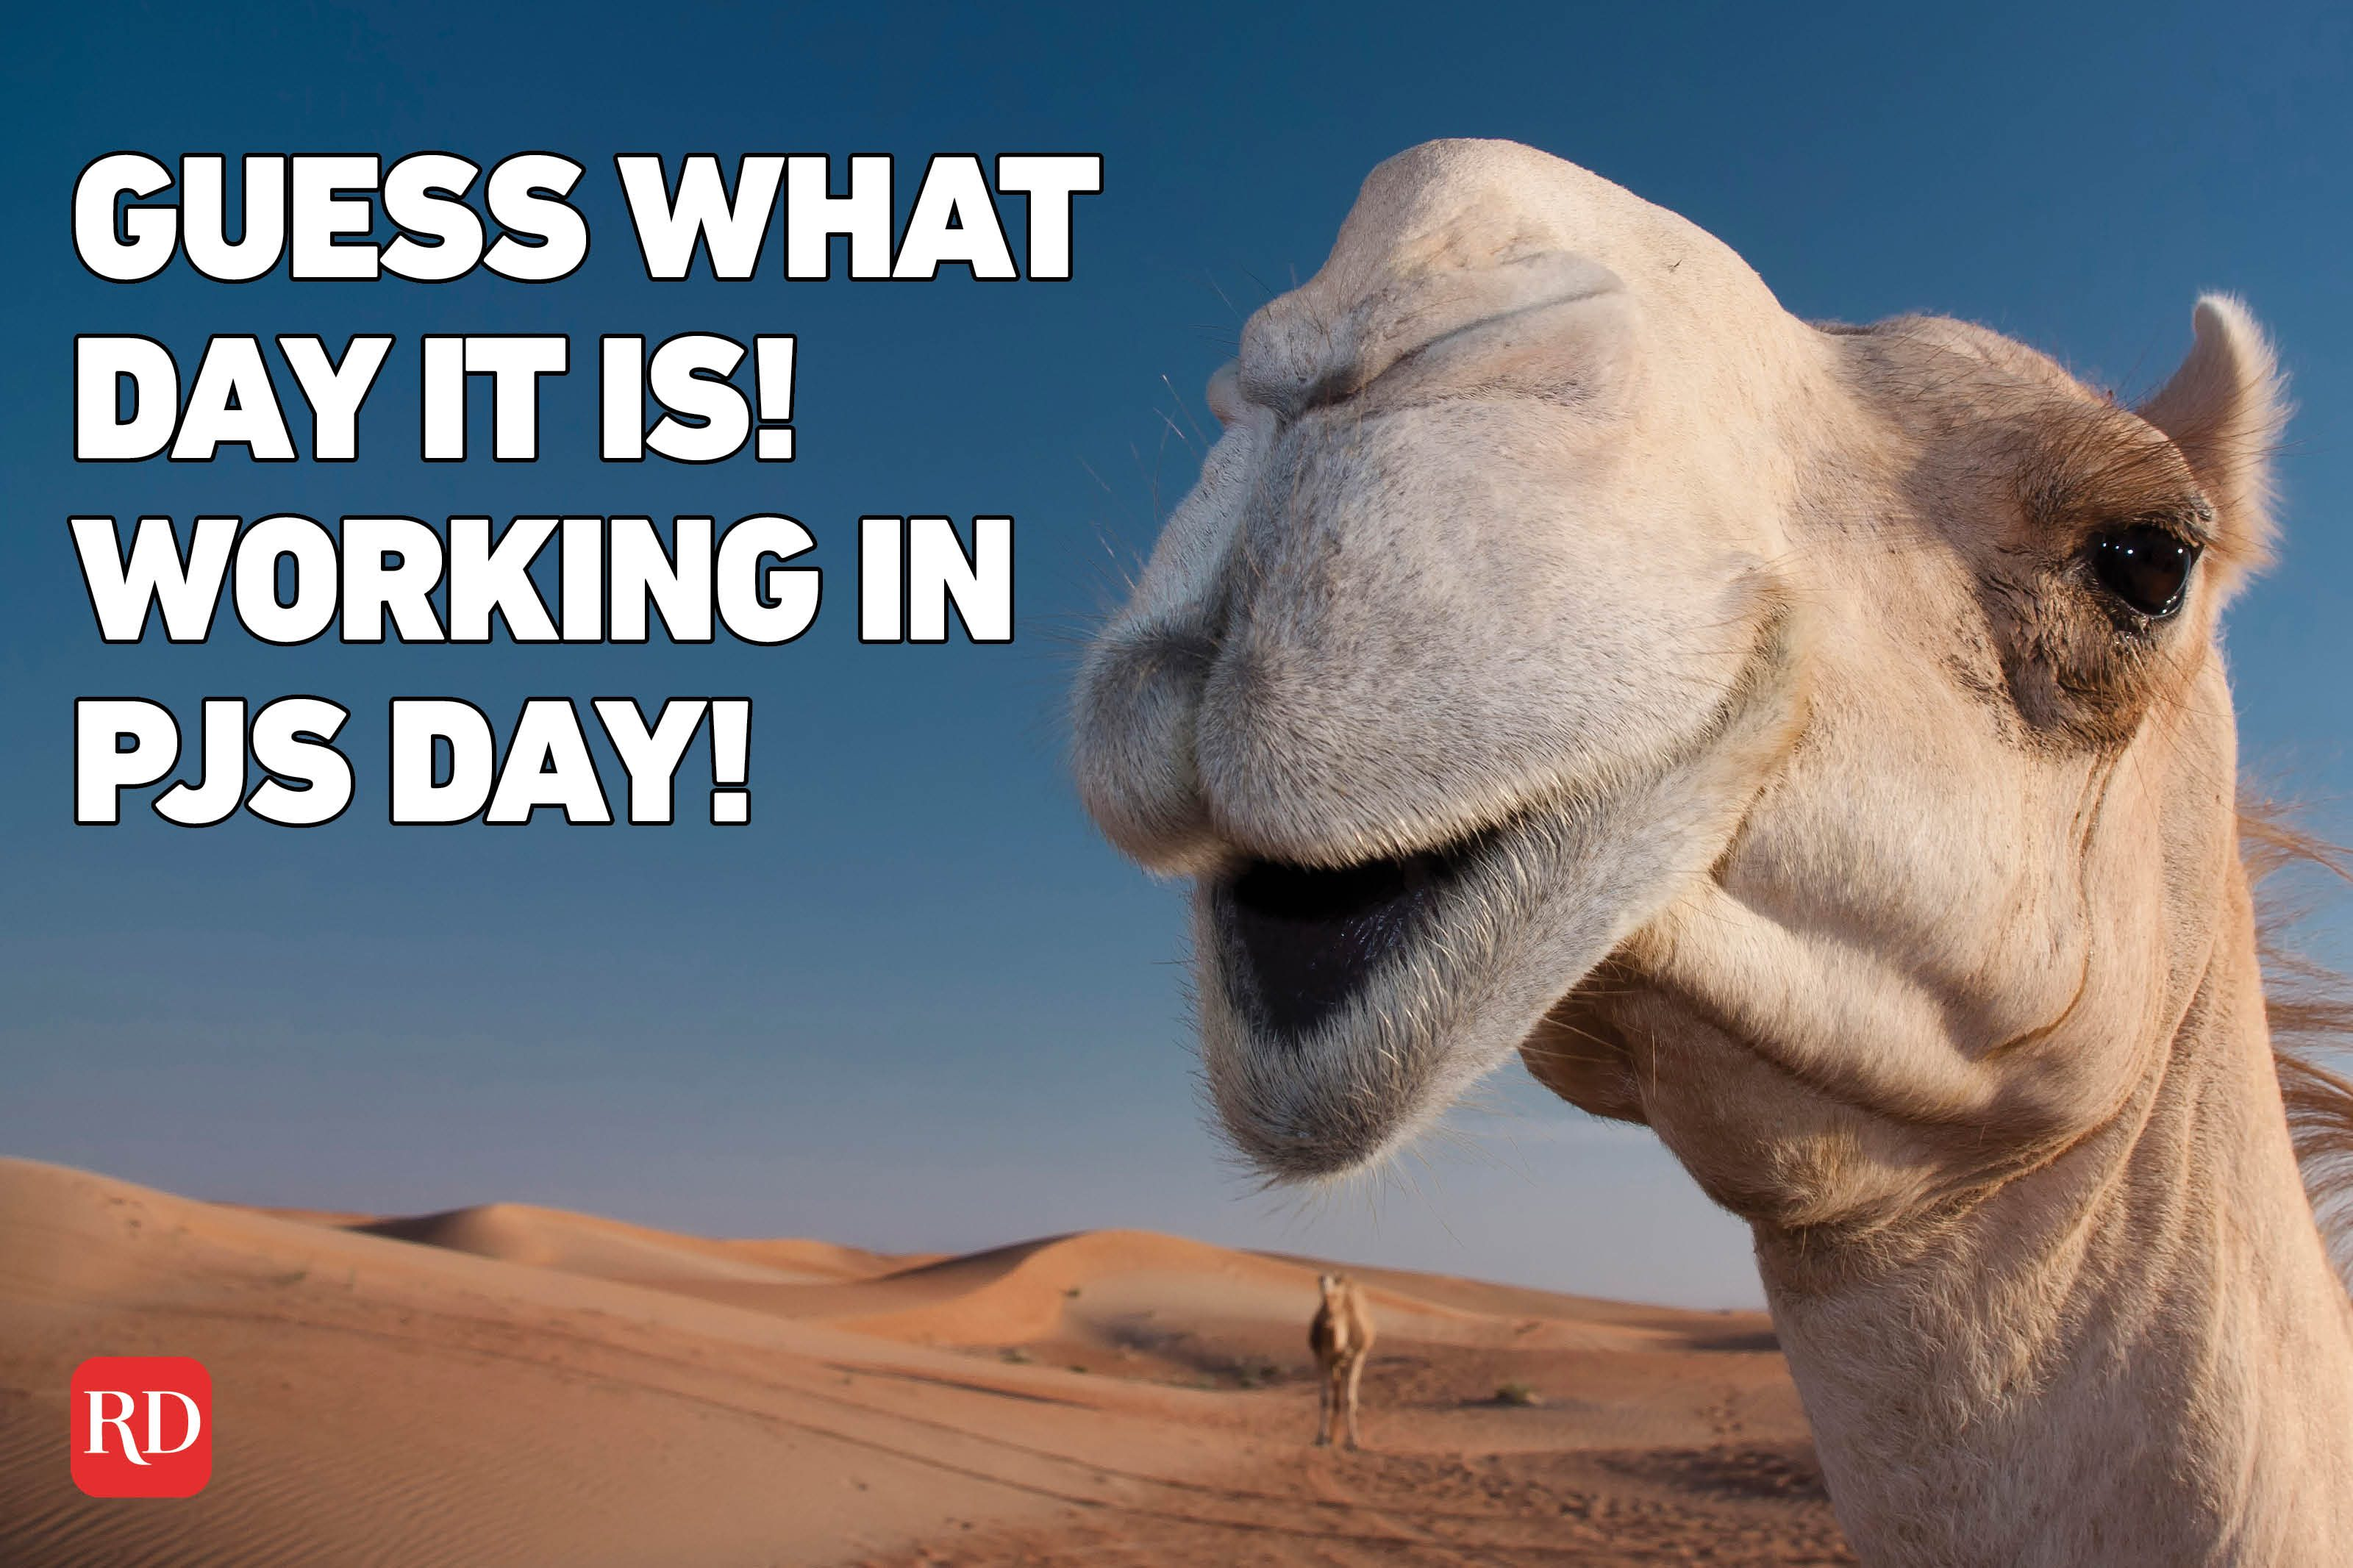 Meme text over image of a camel